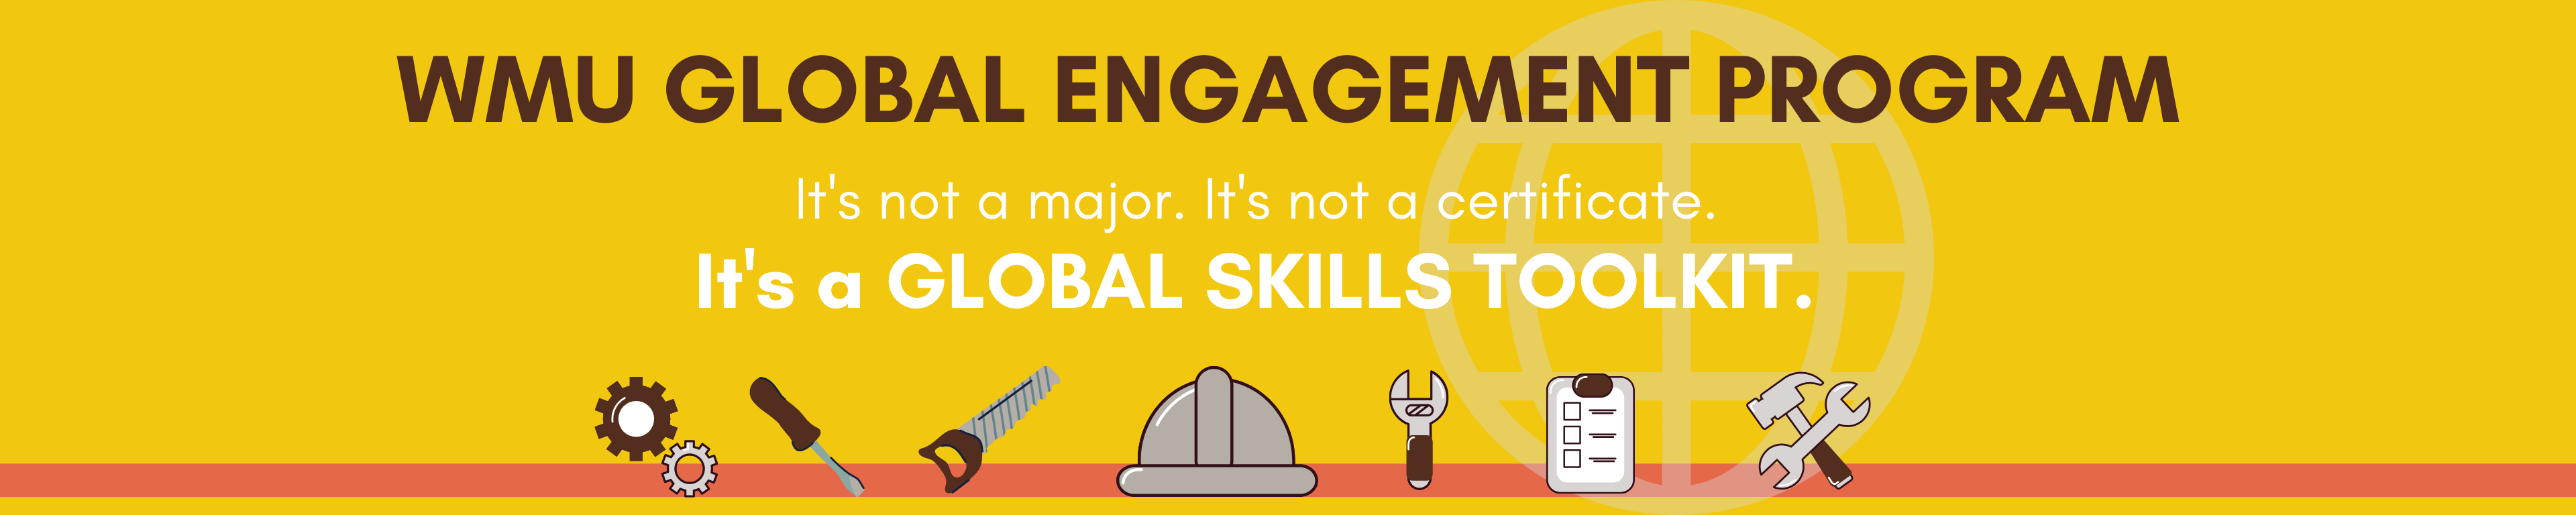 It's not a major. It's not a certificate. It's a global skills toolkit. [icons of tools] Sign up for Year 1 today!